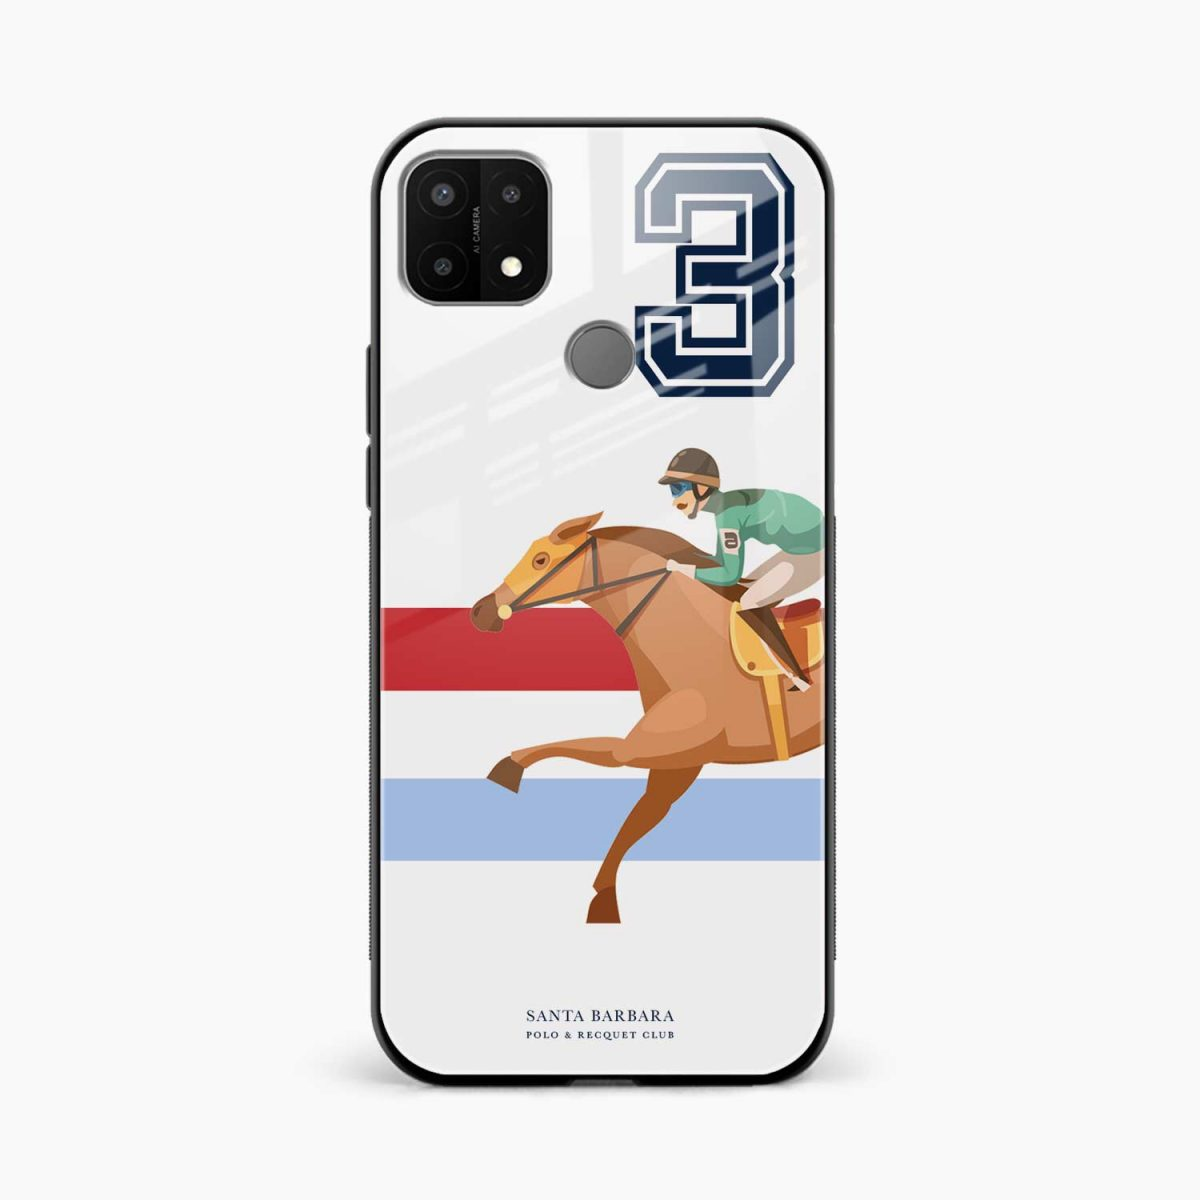 3d sant barbara polo front view oppo a15 back cover